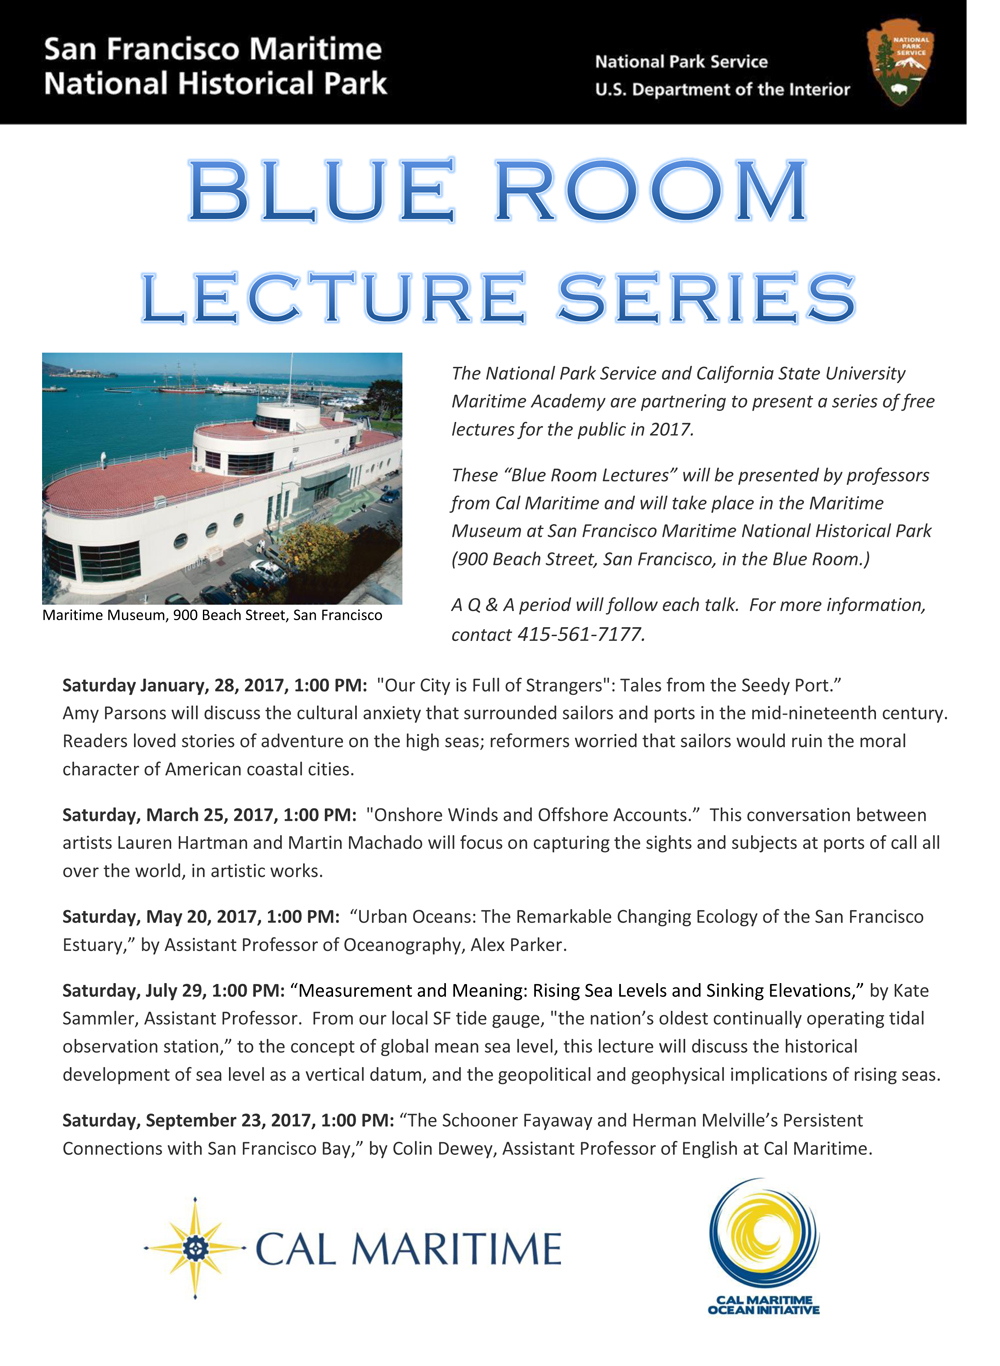 Blue Room lecture series flier